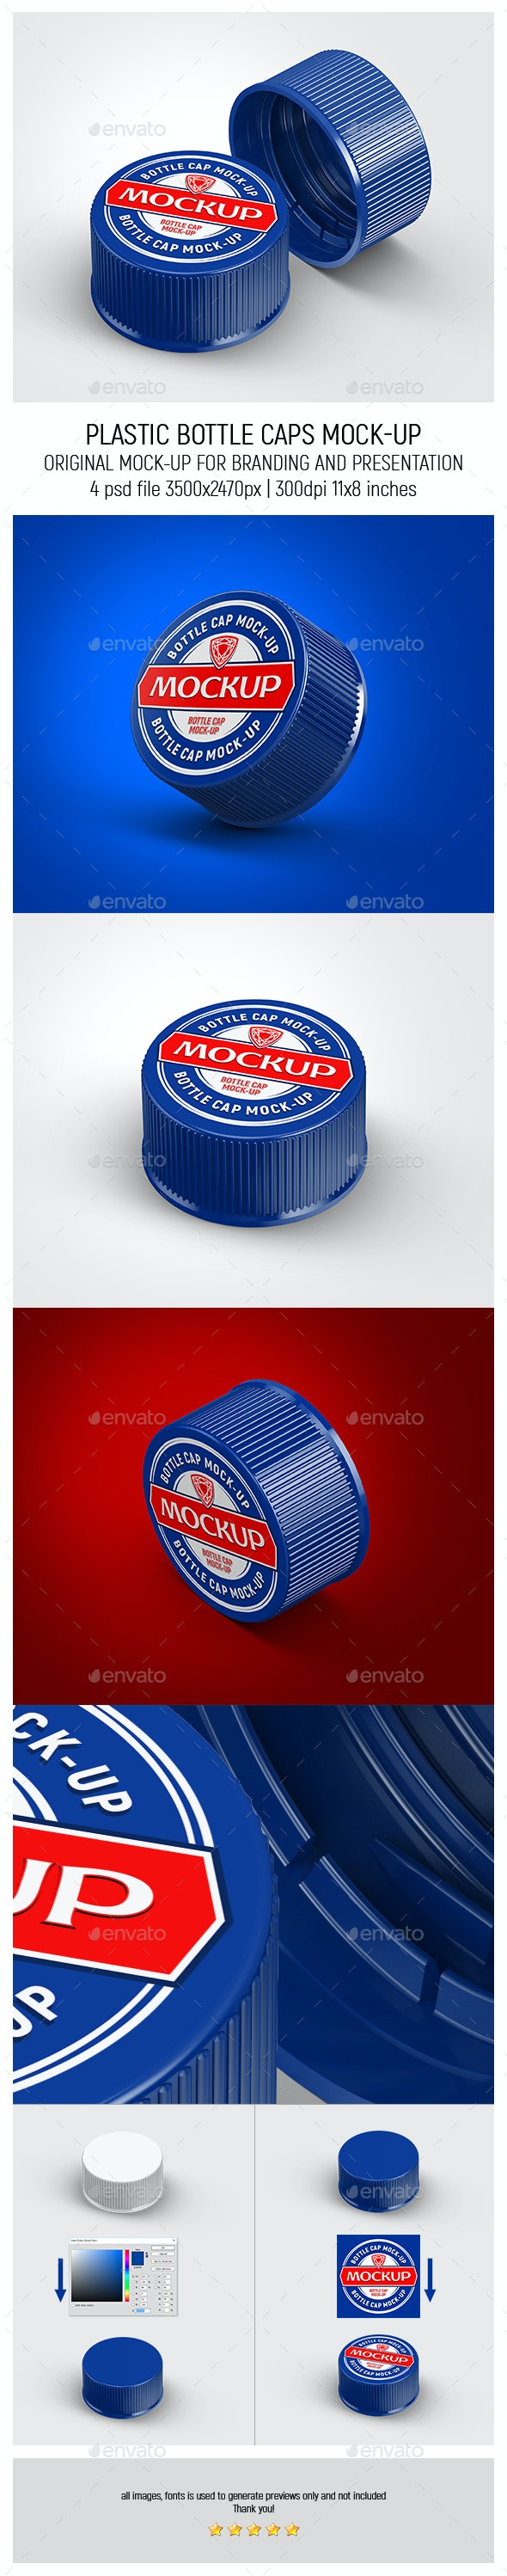 Plastic Bottle Caps Mock-up - Miscellaneous Packaging